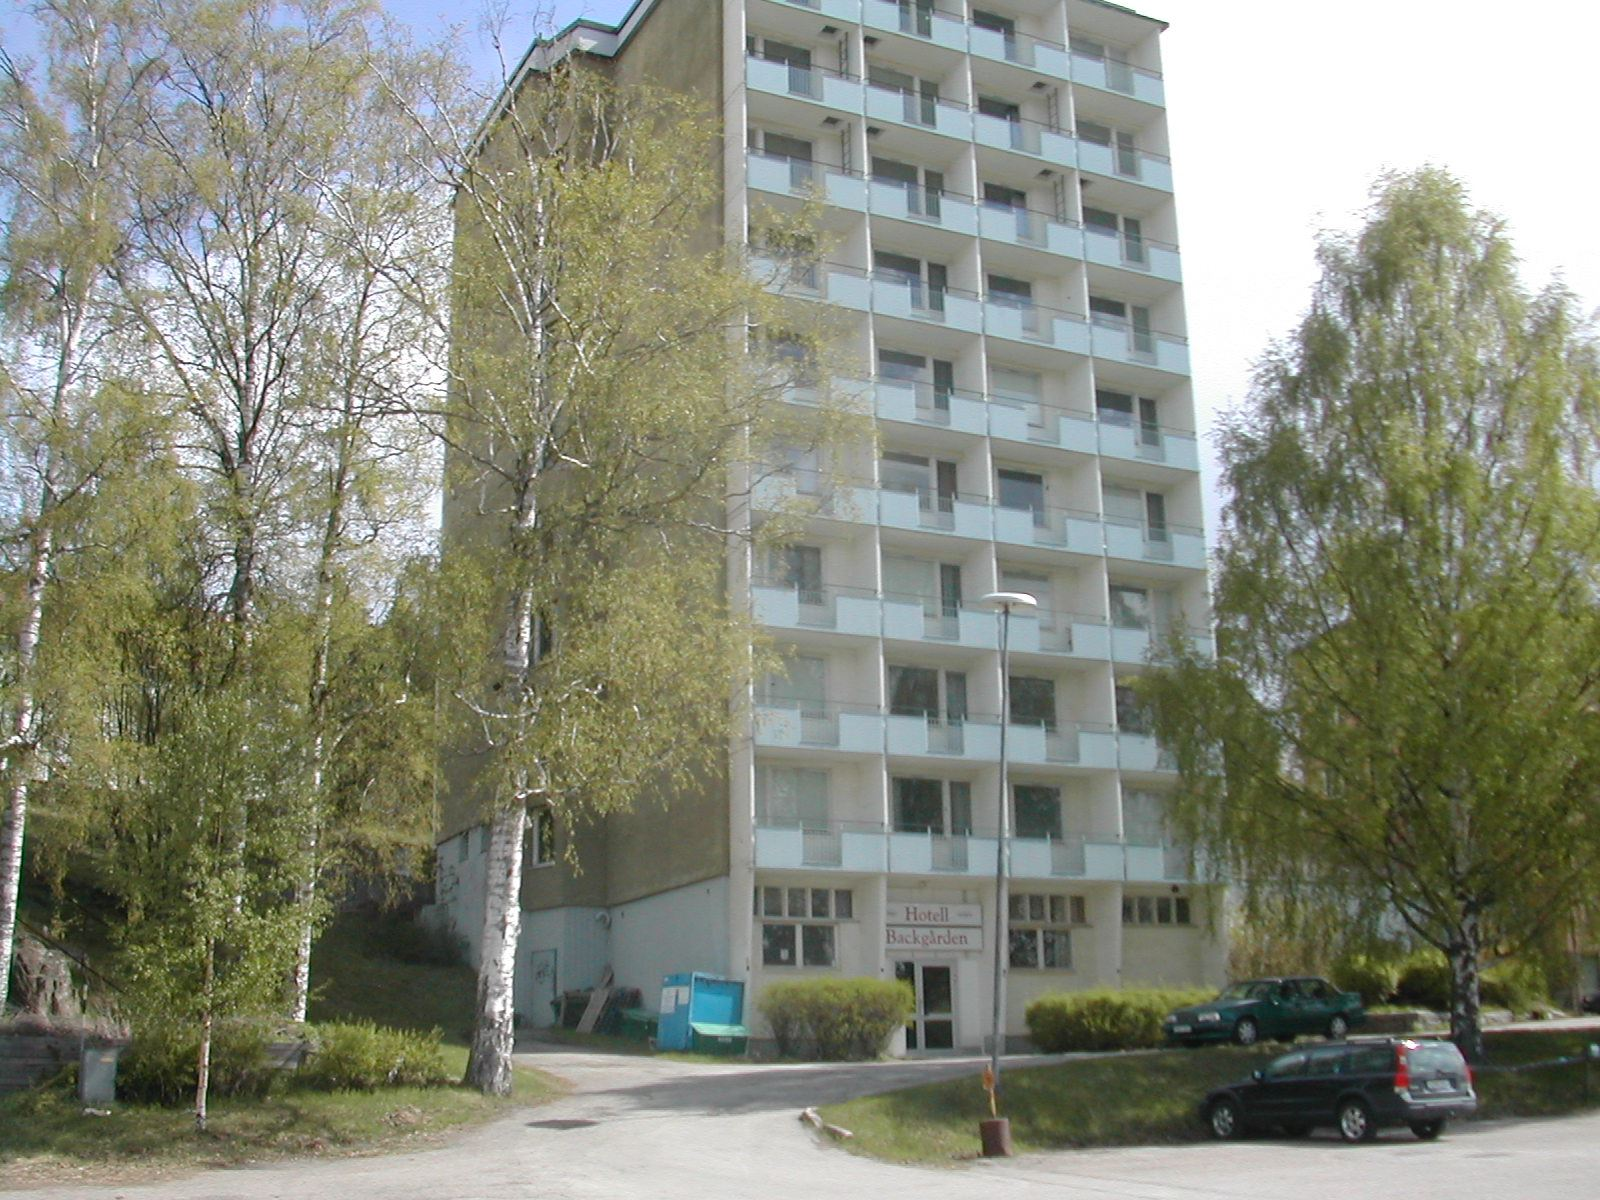 Apartment hotel - Backgården